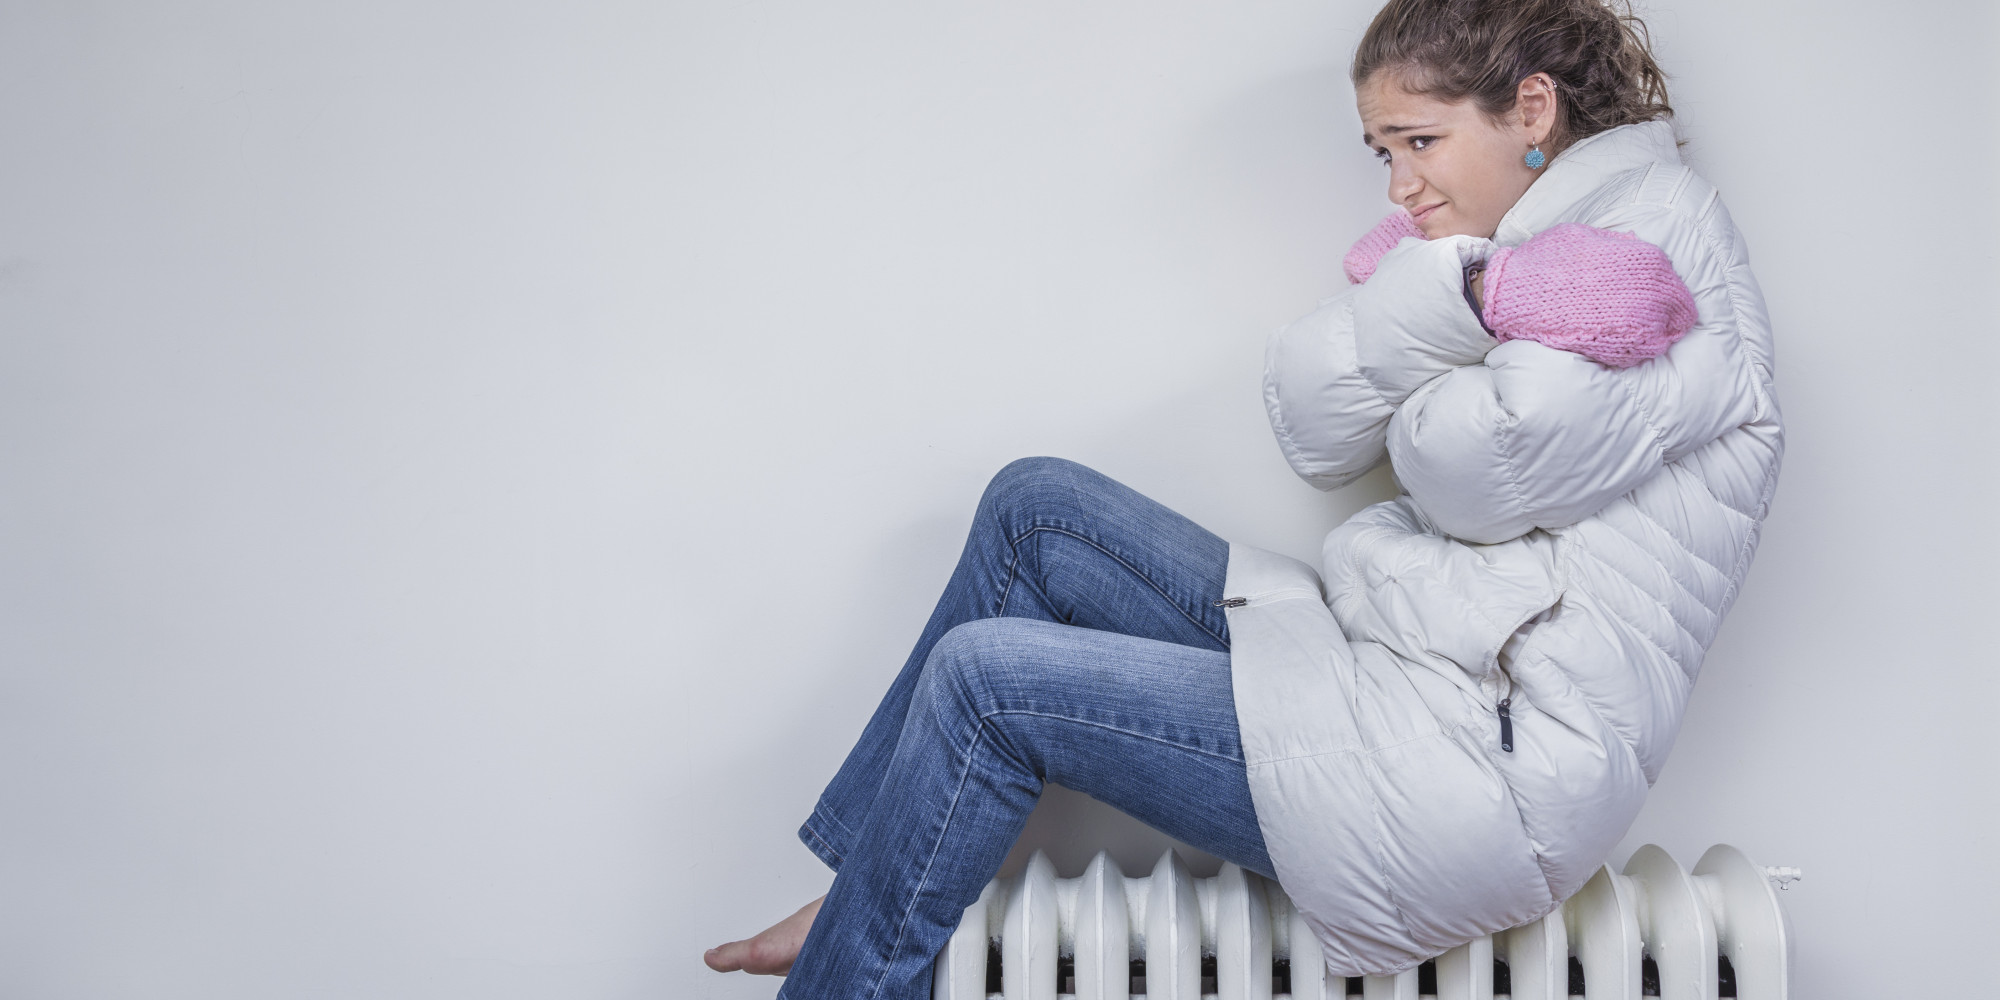 Teen girl sitting on a radiator